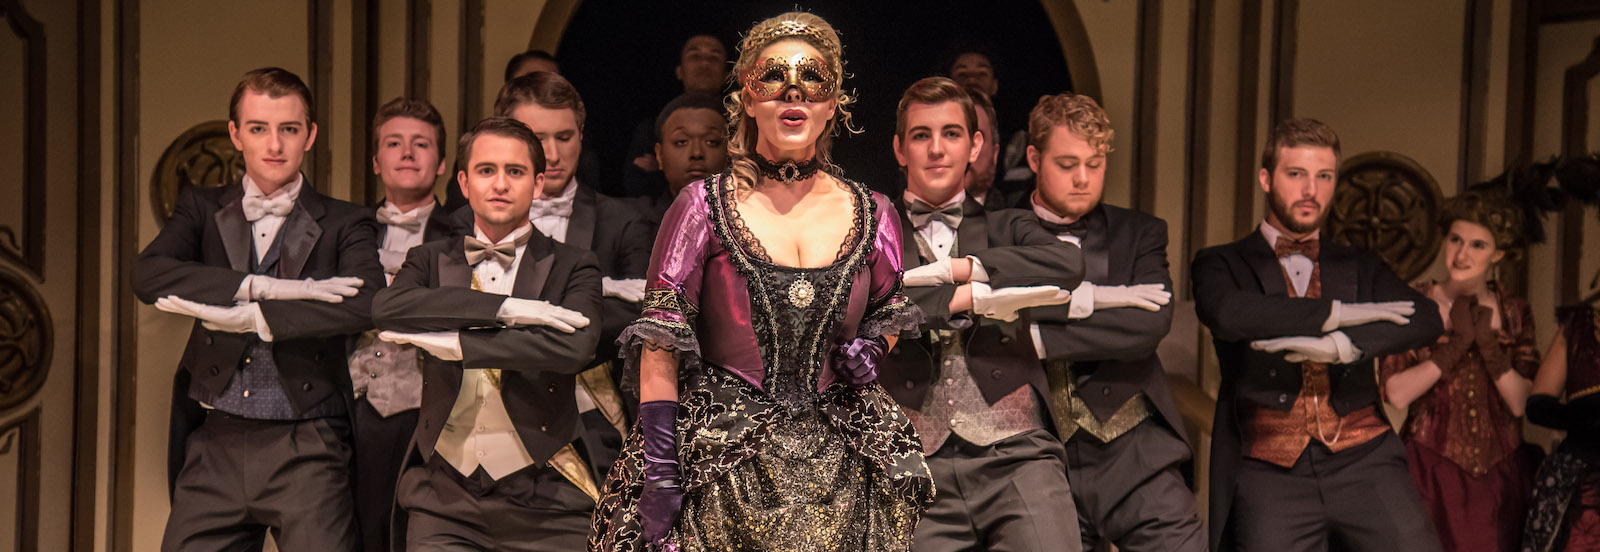 A scene from the opera Die Fledermaus, with a woman in an ornate gown and mask centered in front of a group of men in tuxedoes.